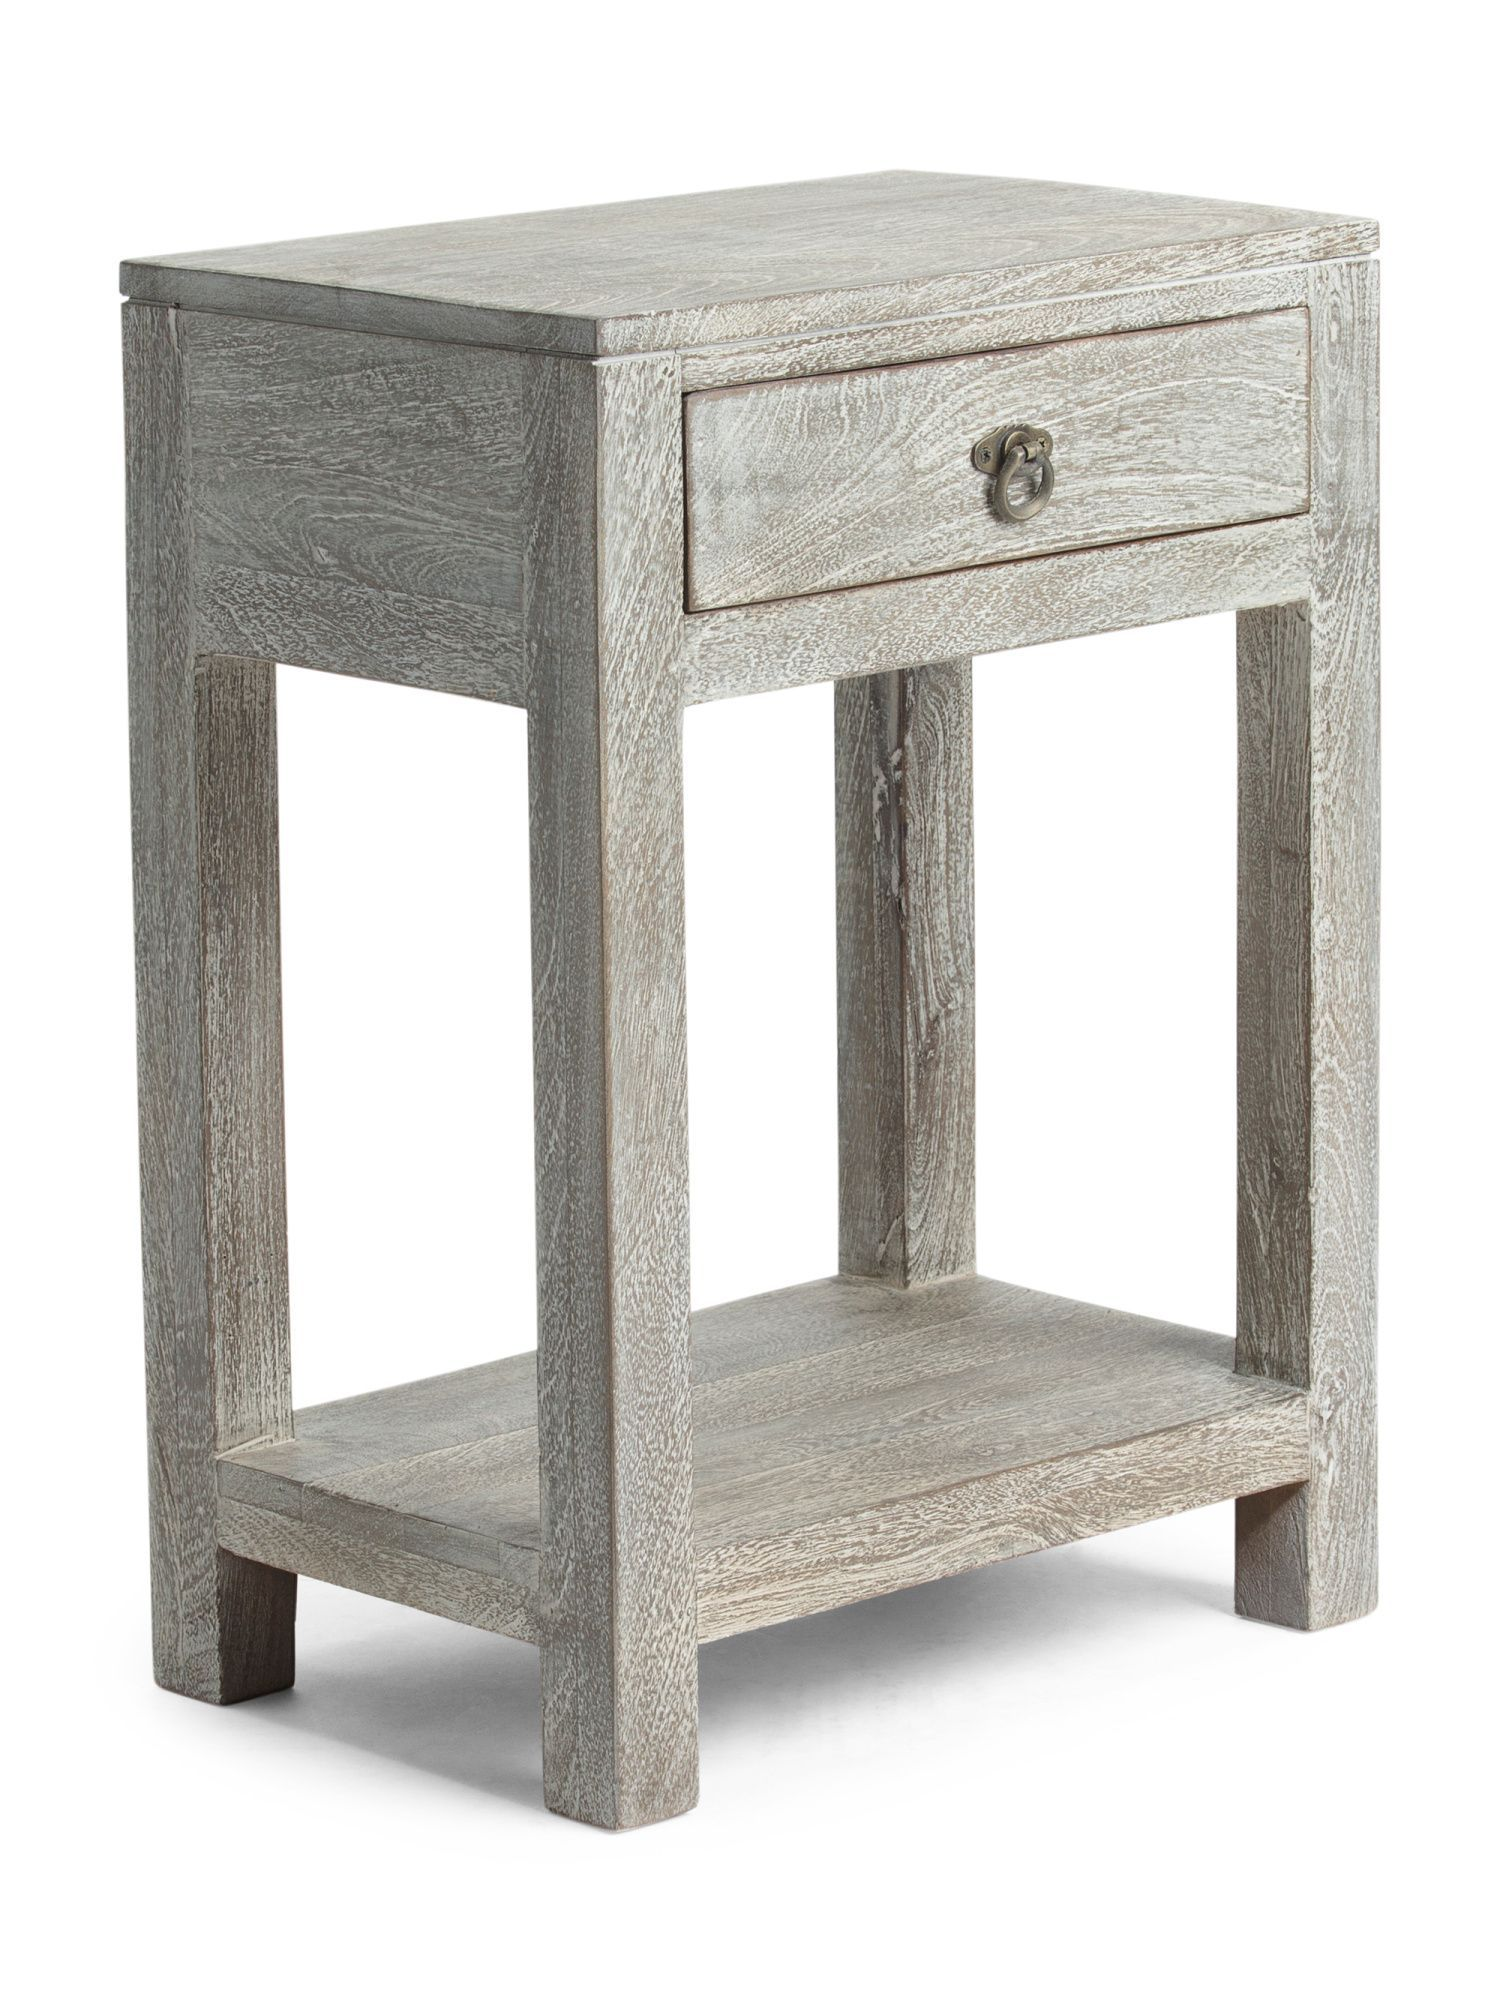 Made In India Wren Wooden End Table Accent Furniture Tables Nightstand